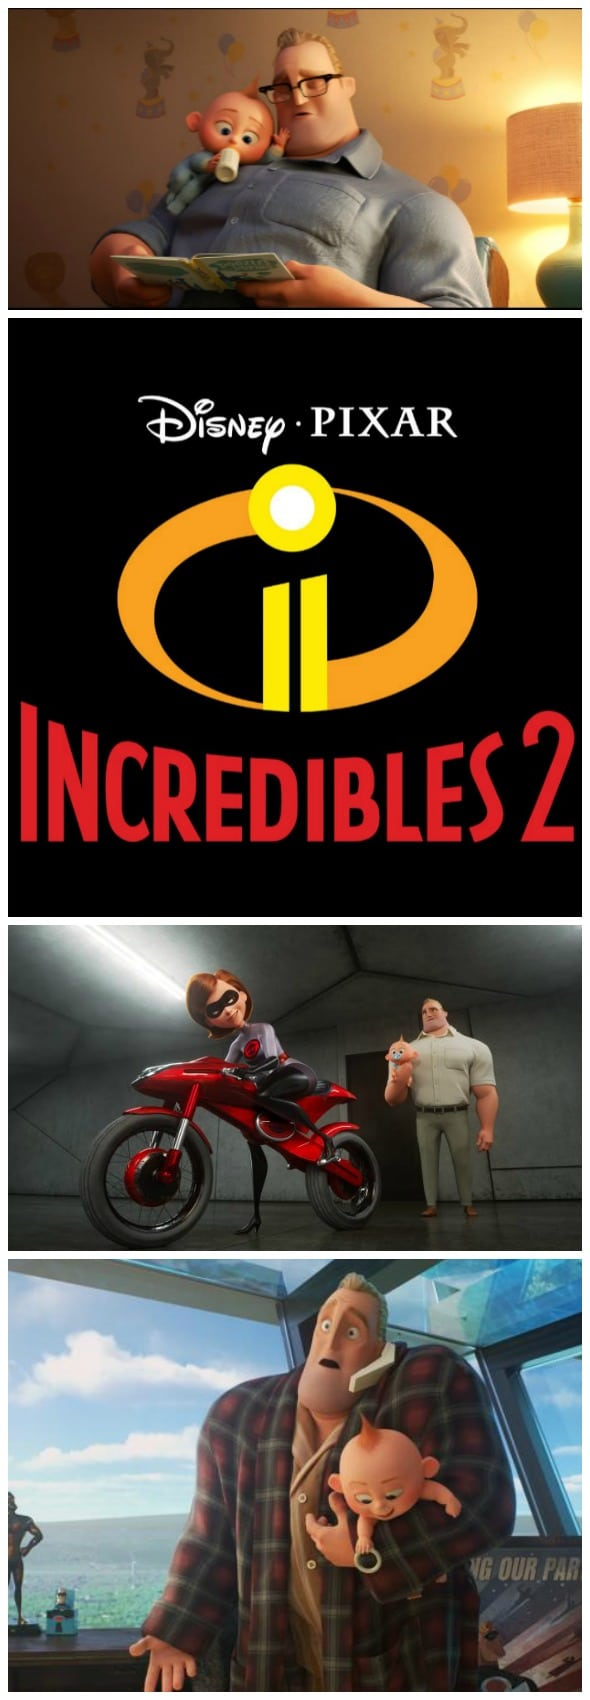 Incredibles 2 Worth the Long Wait #incredibles2 #partner #disney #pixar #disneypixar #movie #superhero